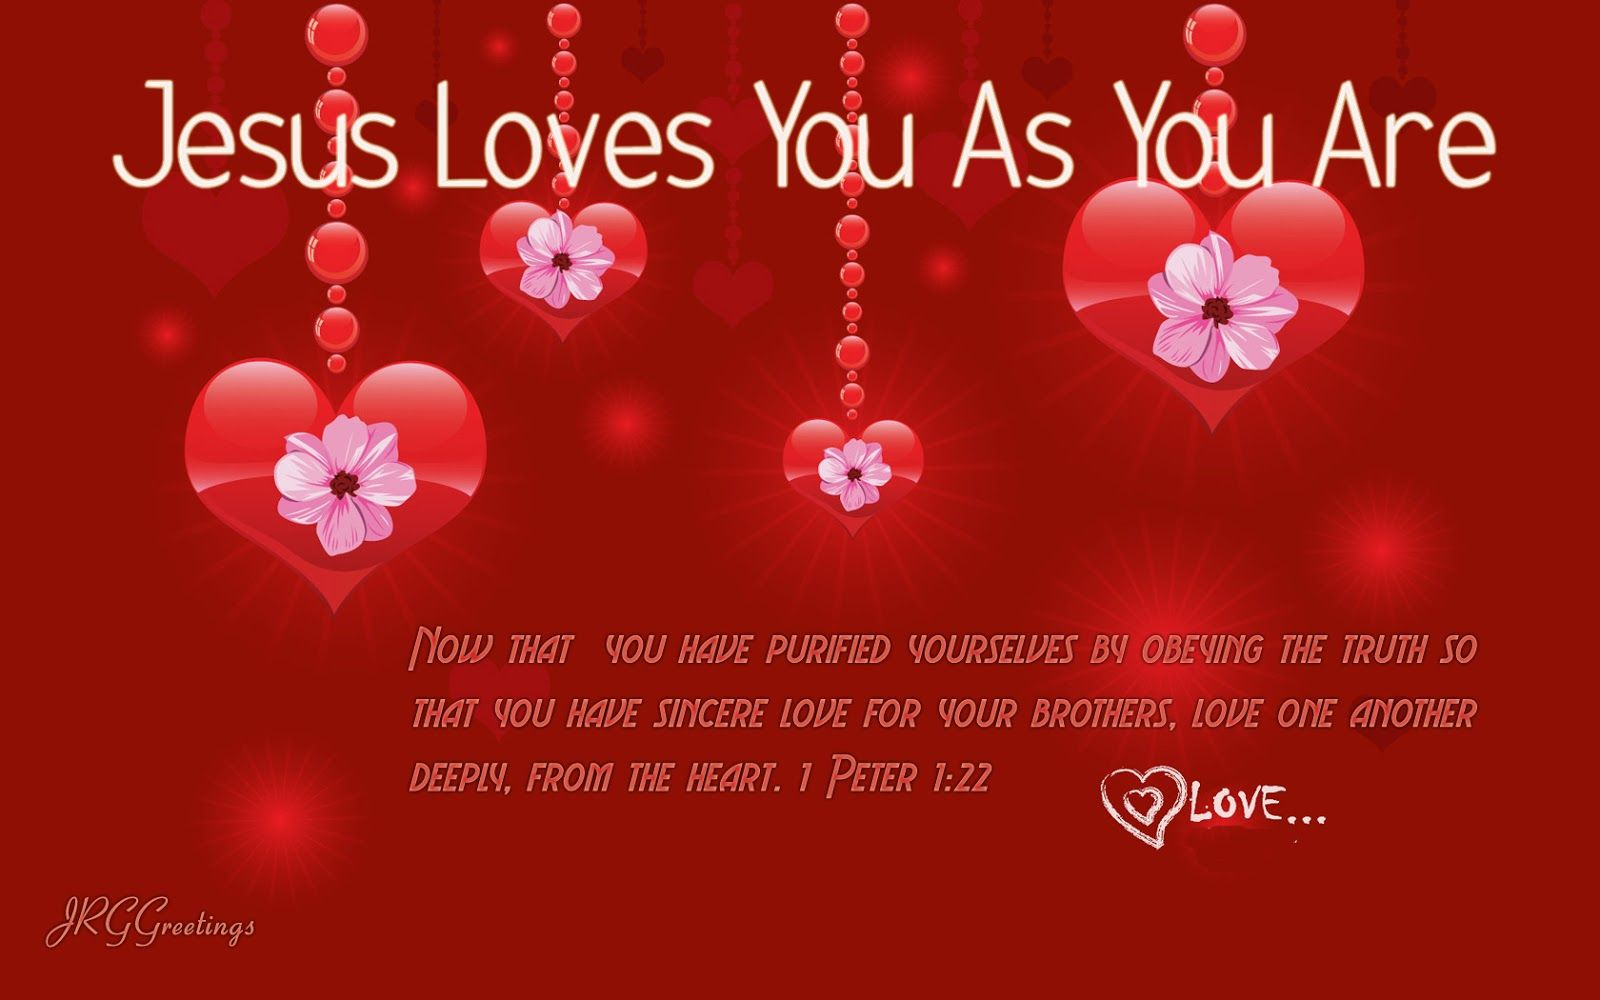 Christian valentines day greetings free and wallpaper biblical christian valentine wallpaper christian valentines day greetings and wallpaper kristyandbryce Gallery